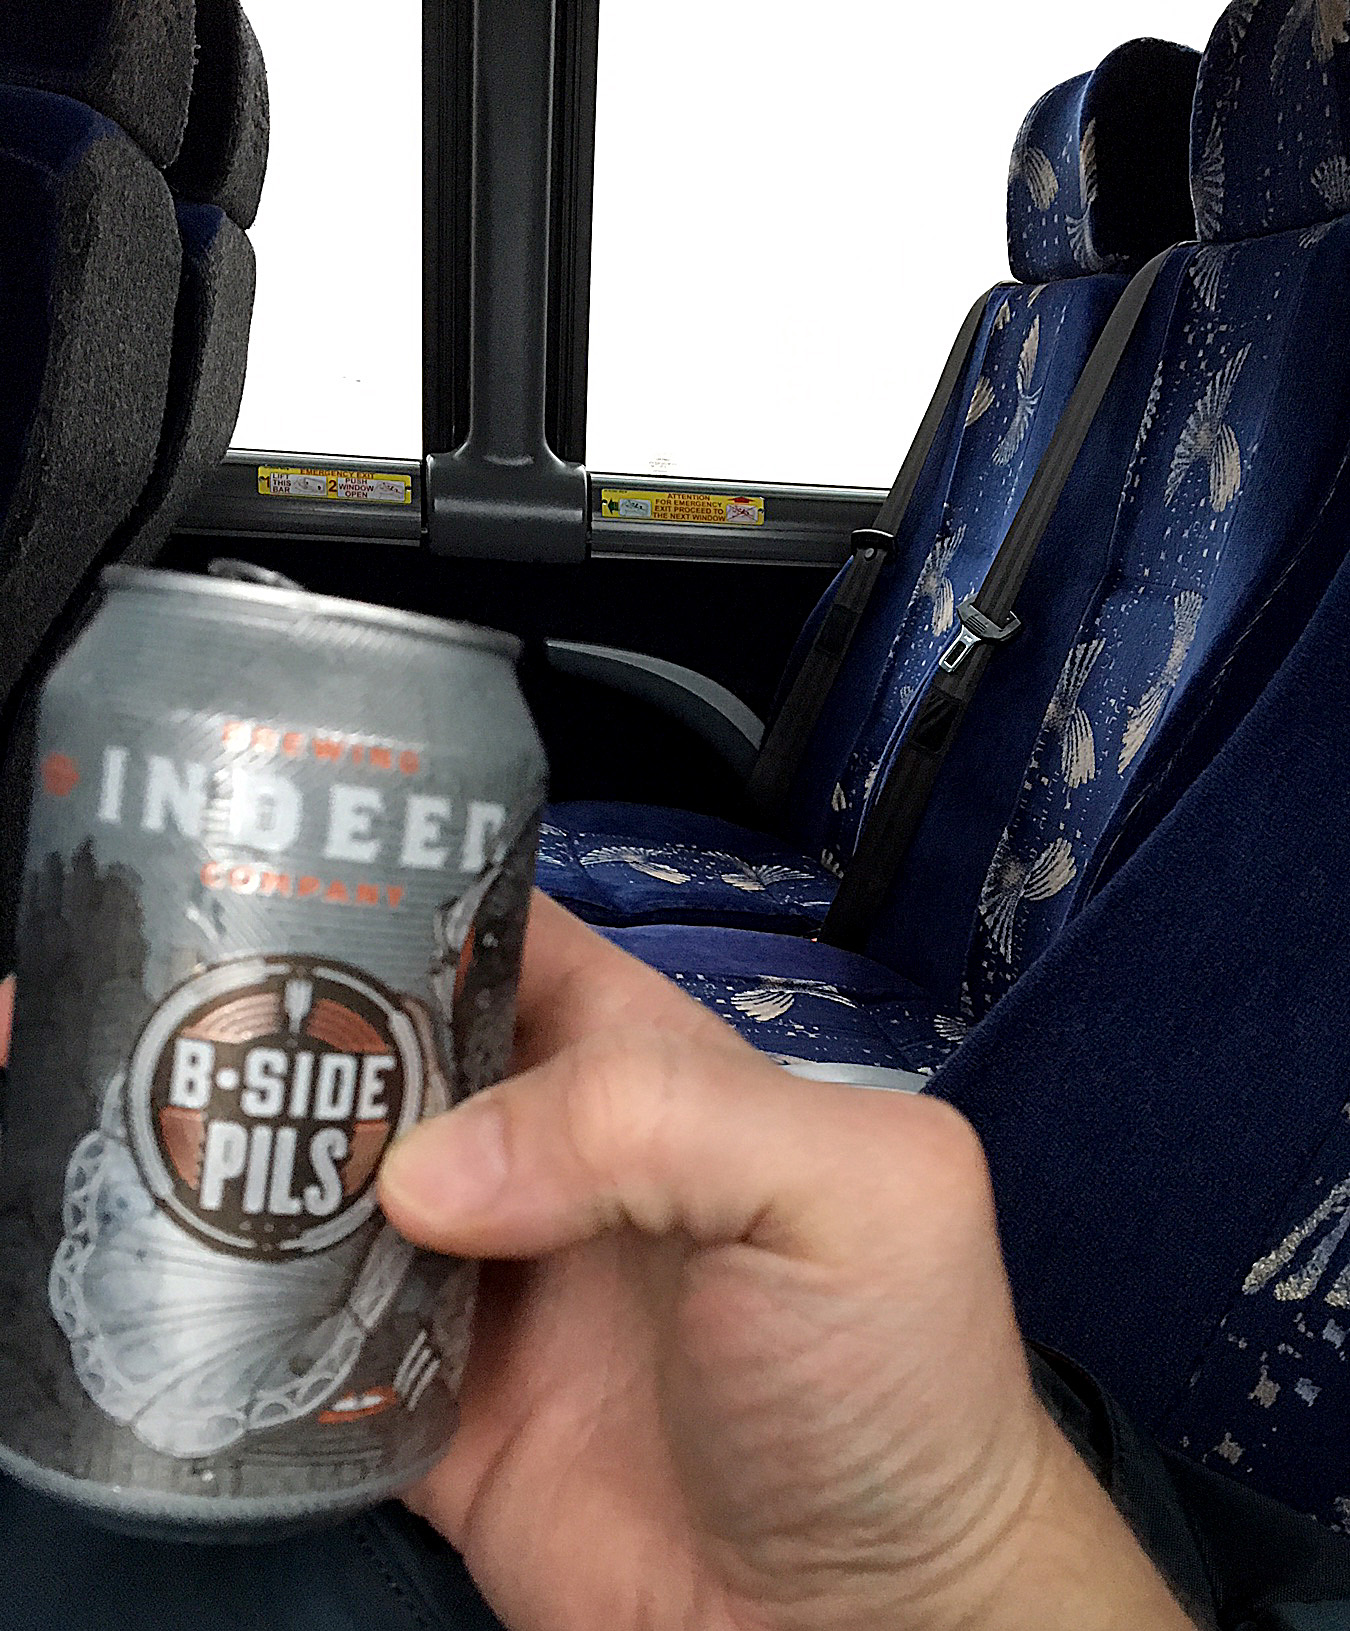 Done with classes for the day, time for a field trip. Of course there was beer on the bus.